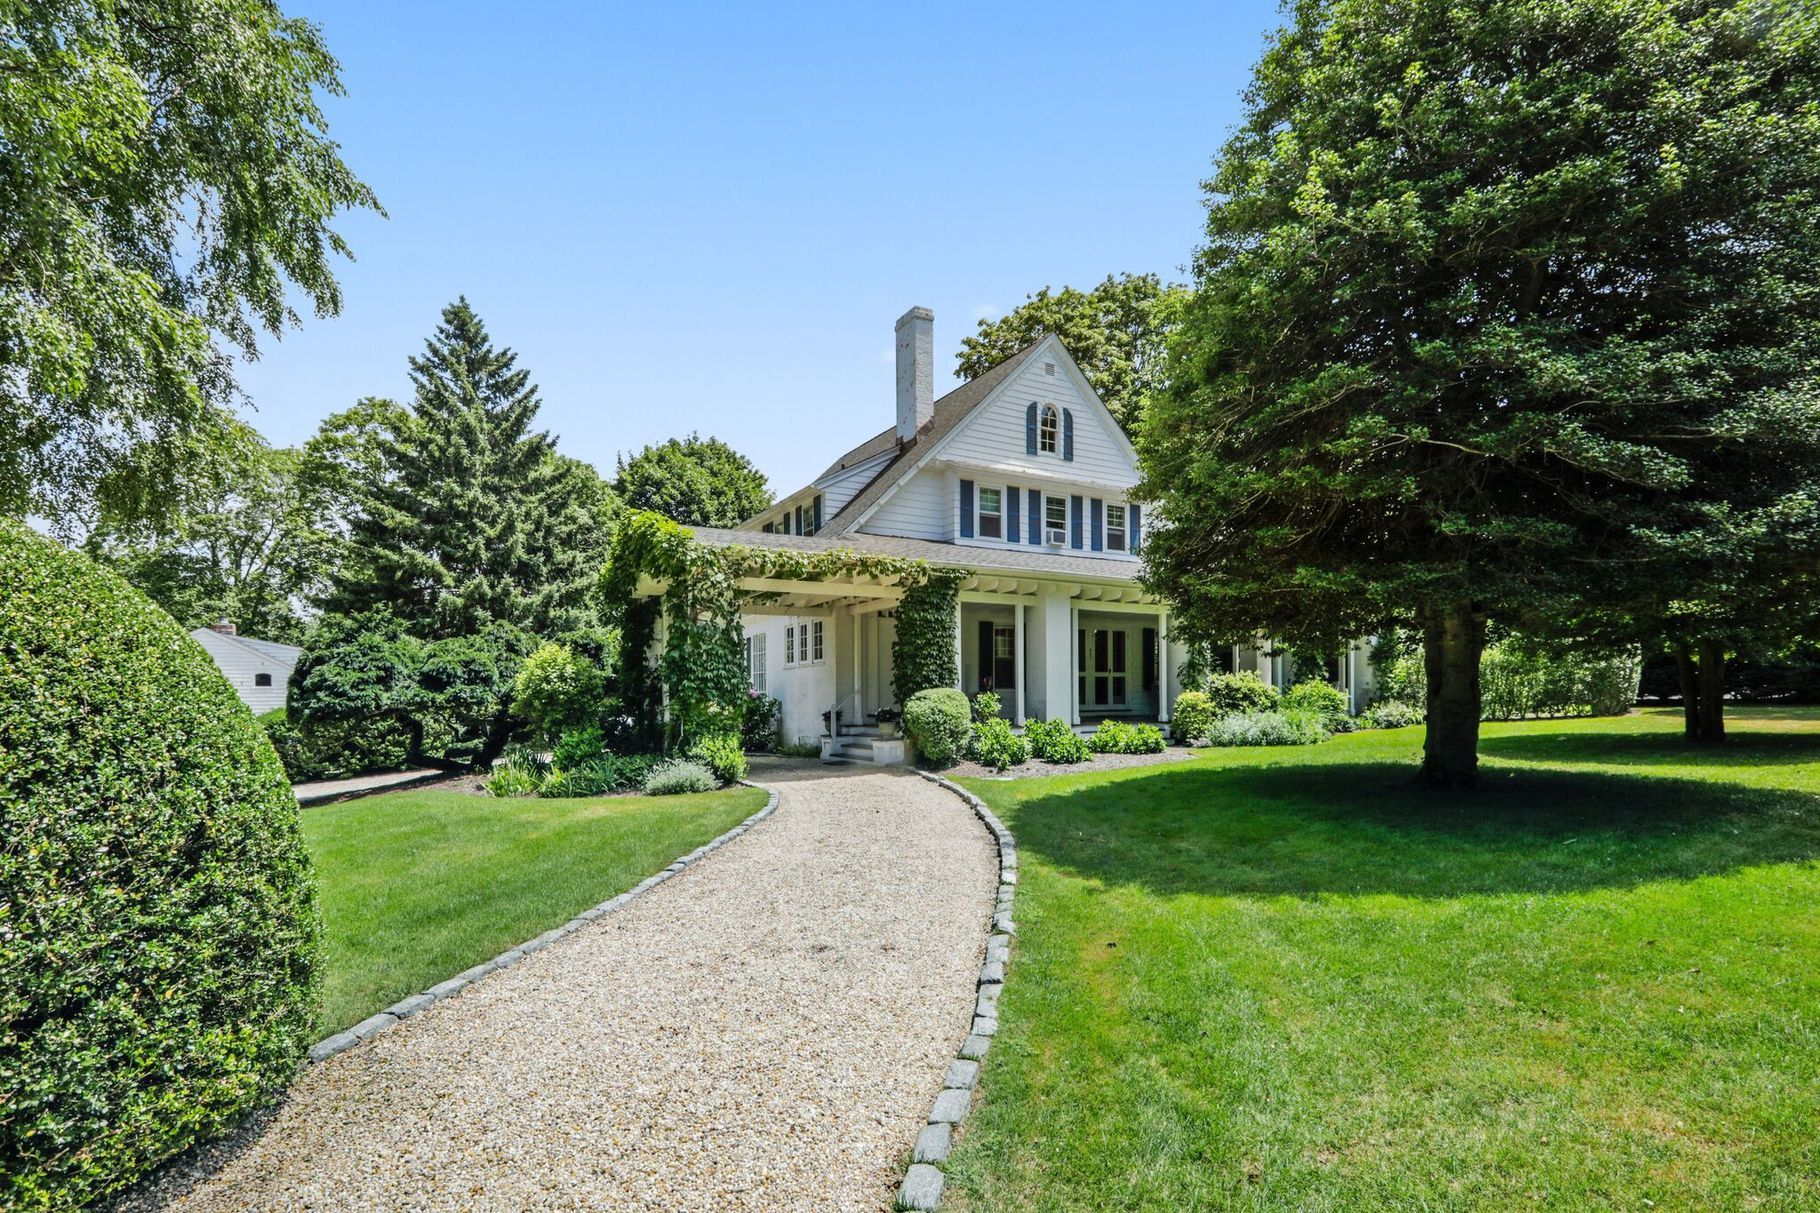 One Of The Gimbel Family's Former Water Mill Estates Sells For For $5.4 Million